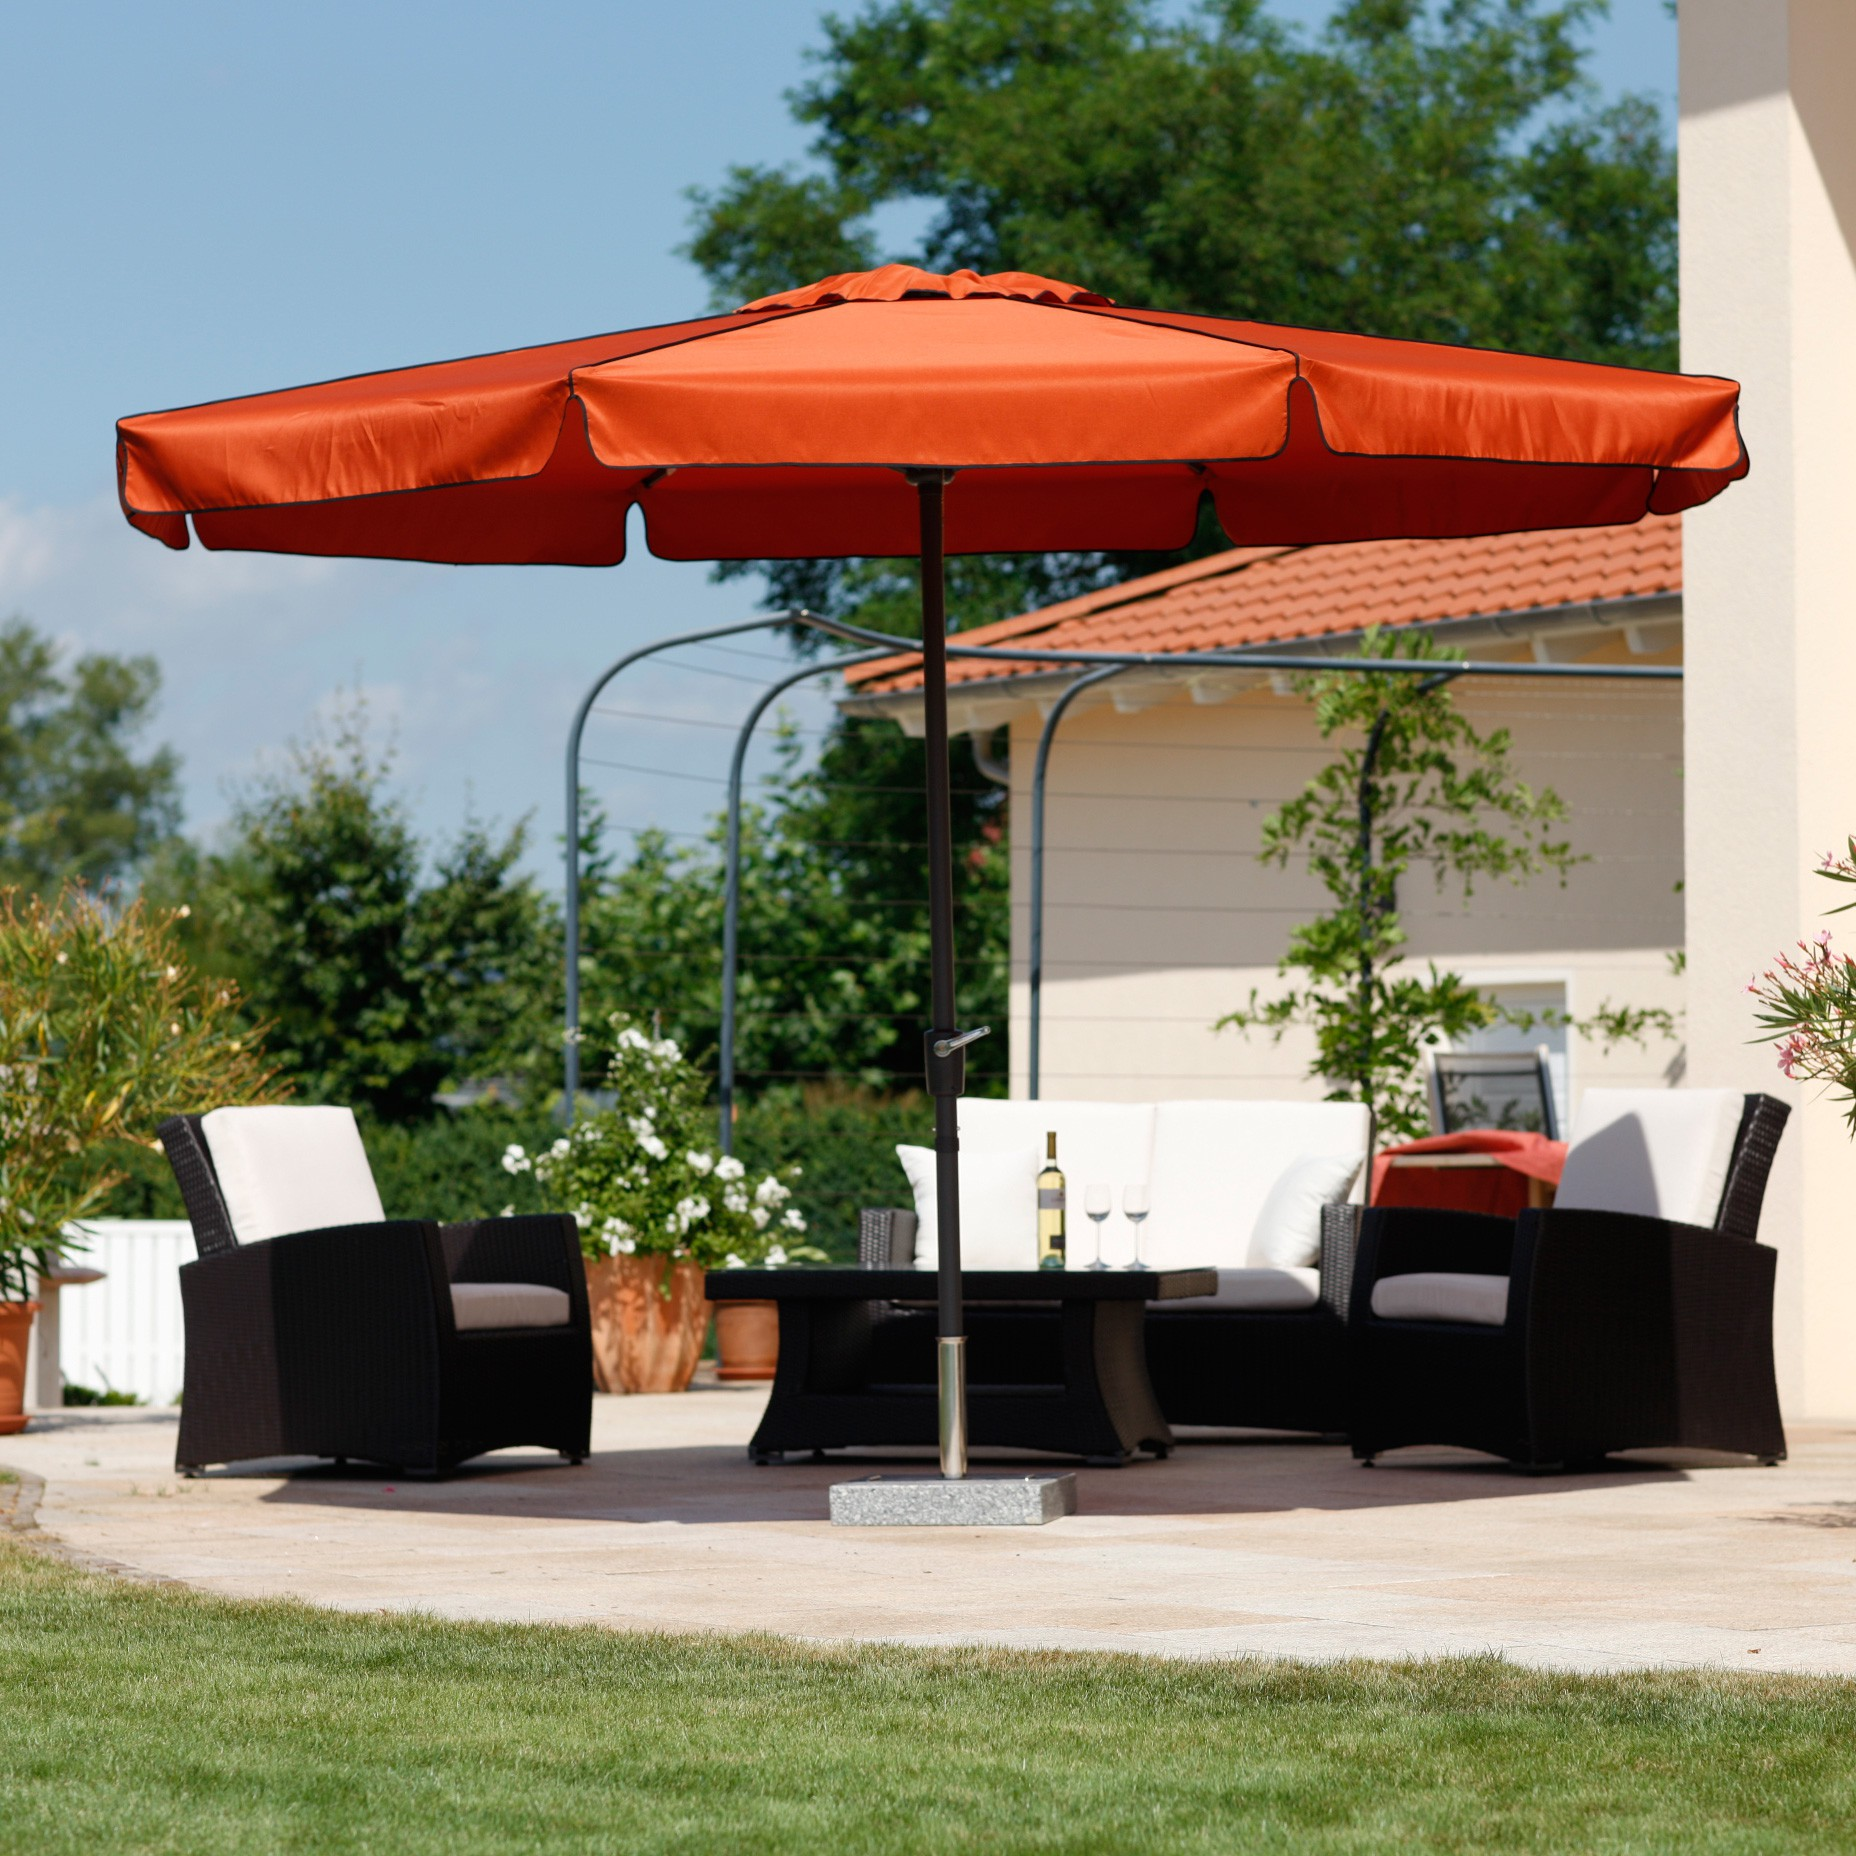 Amalfi 300 terra outdoor